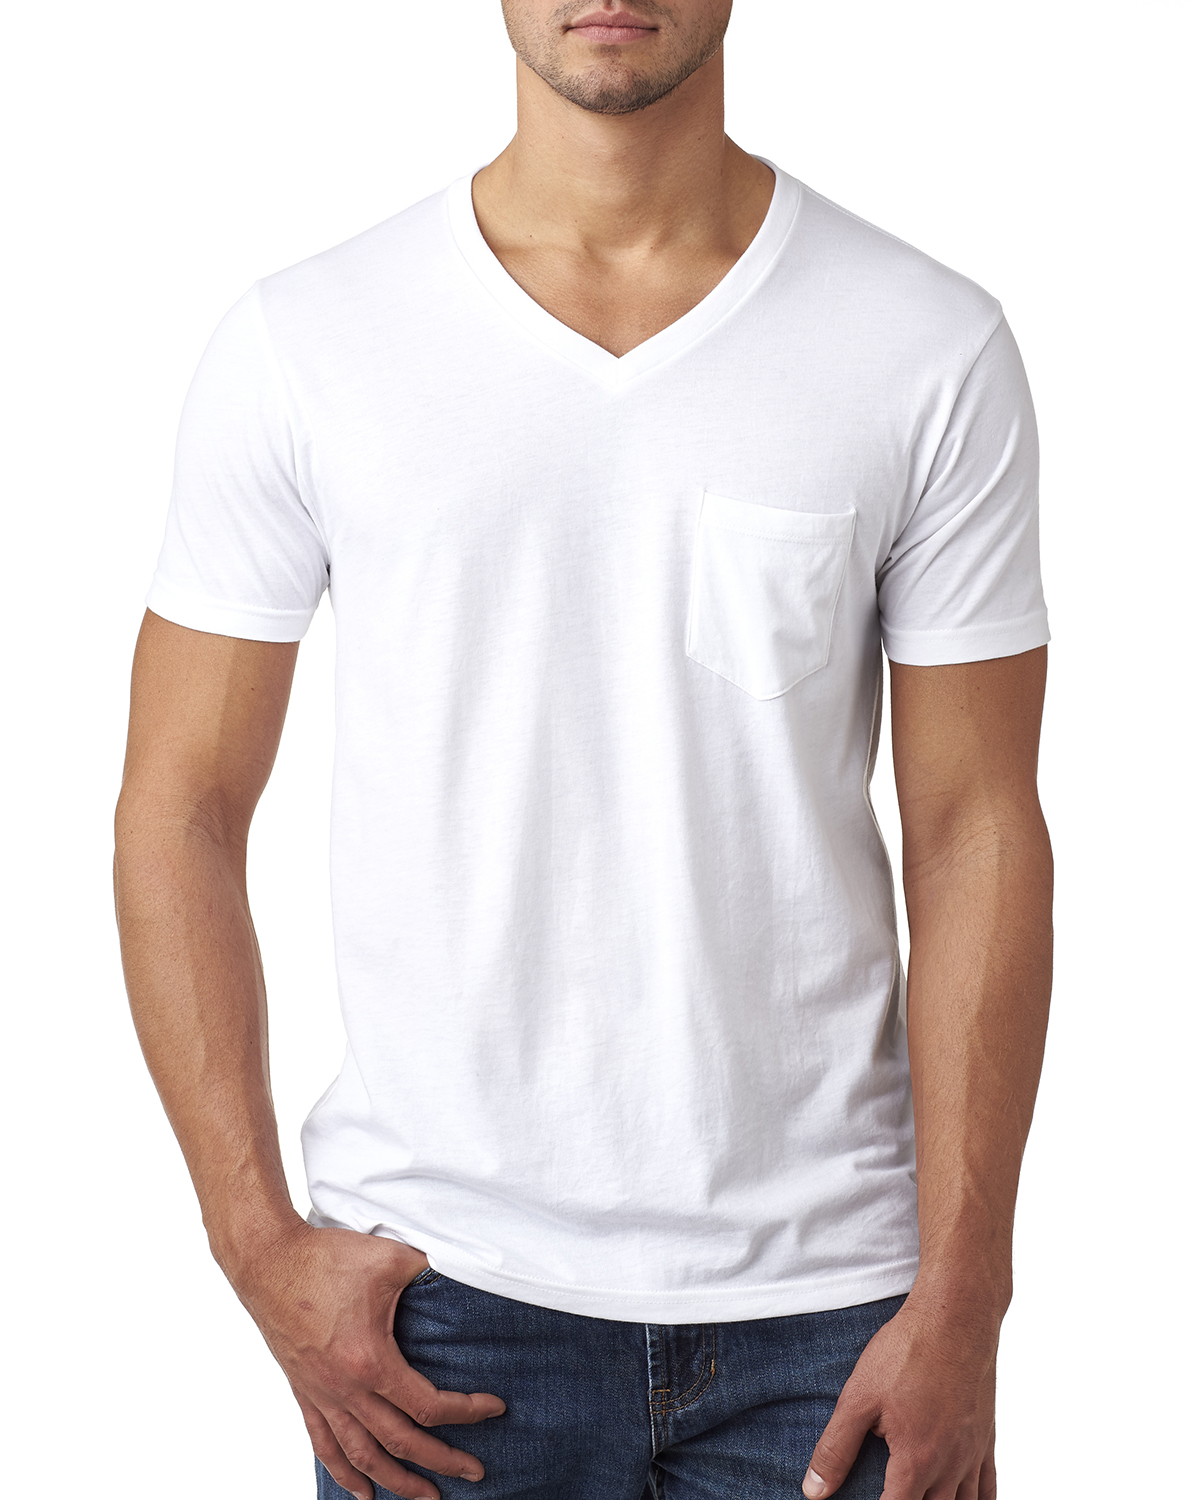 Next Level Apparel 6245 - Men's CVC Tee with Pocket